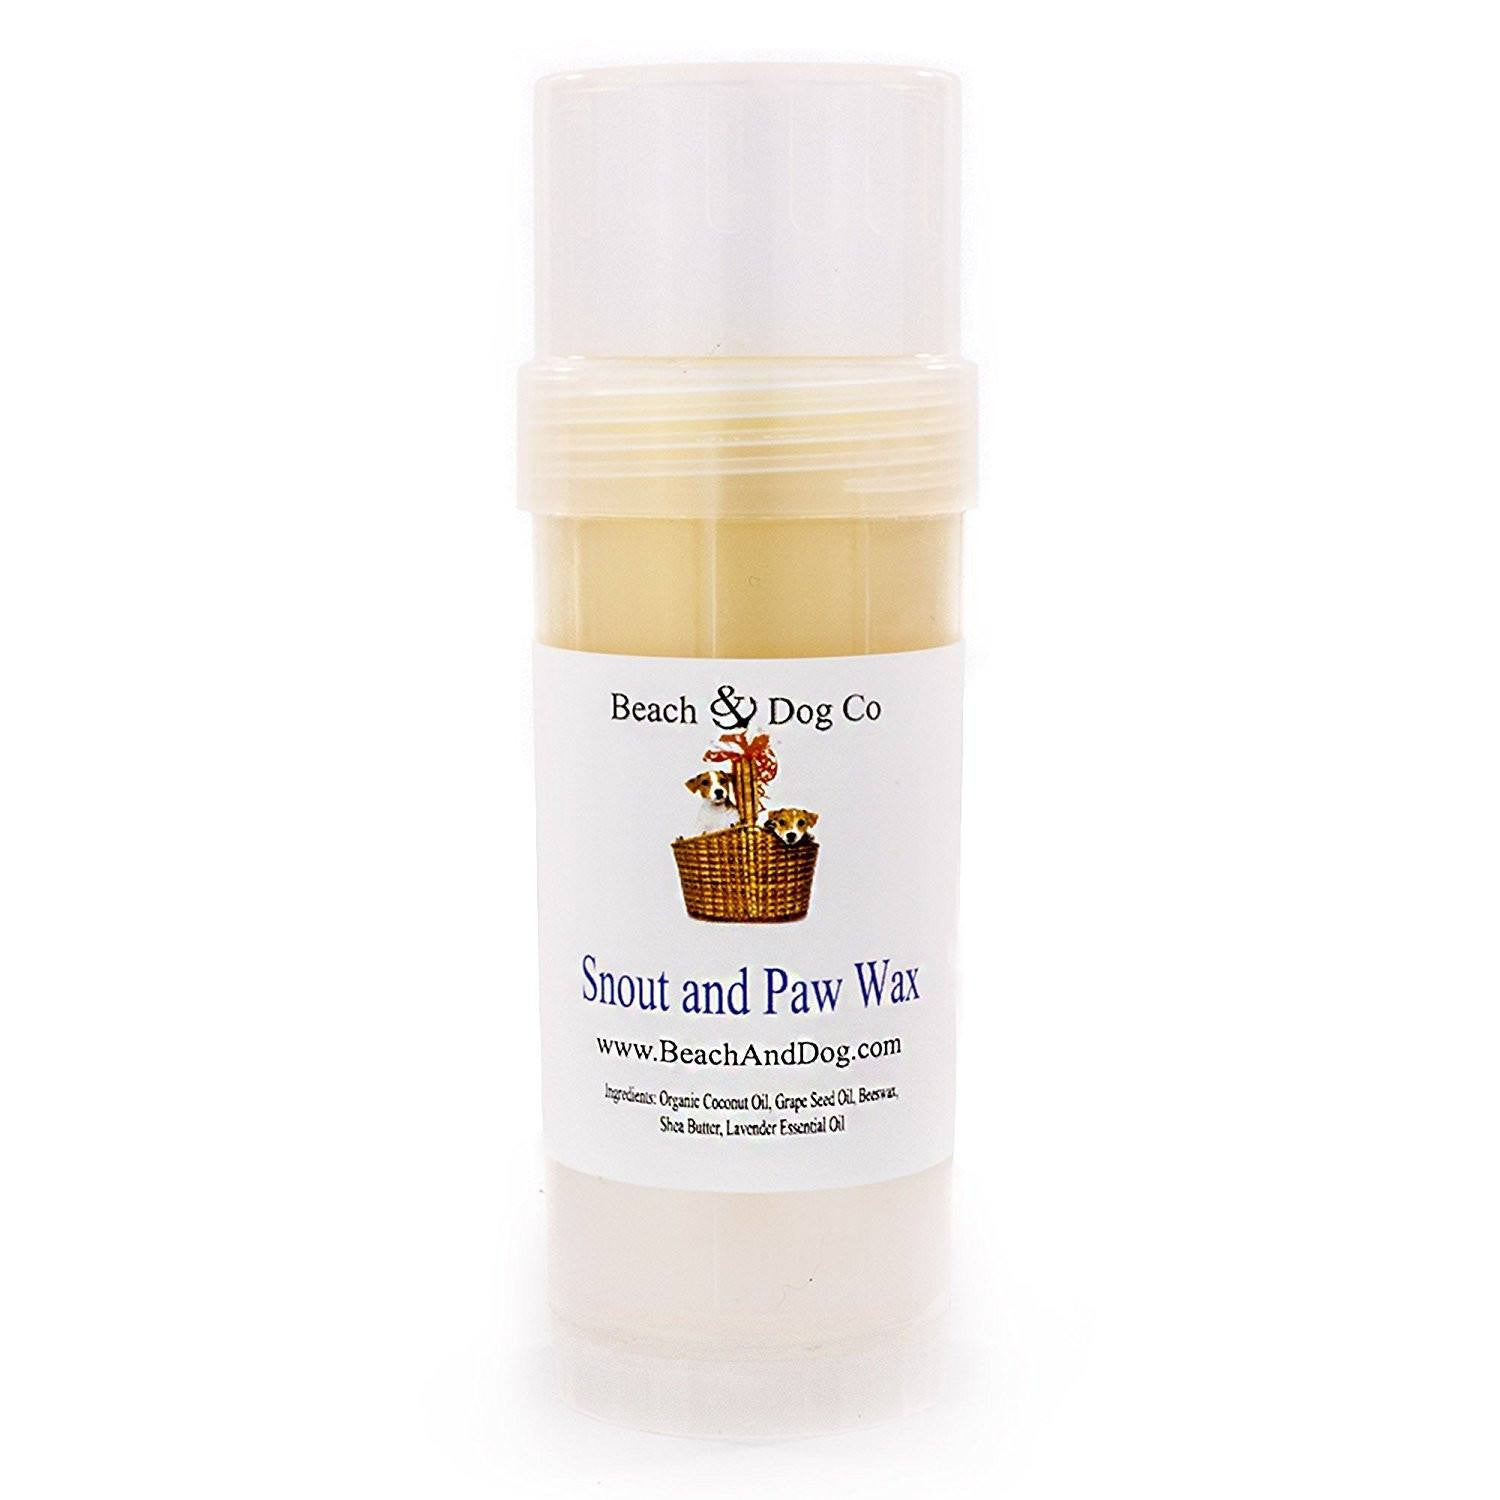 Snout and Paw Wax (2 oz Twist Up) For Dry Chapped Cracked Noses and Paws - Beach & Dog Co.